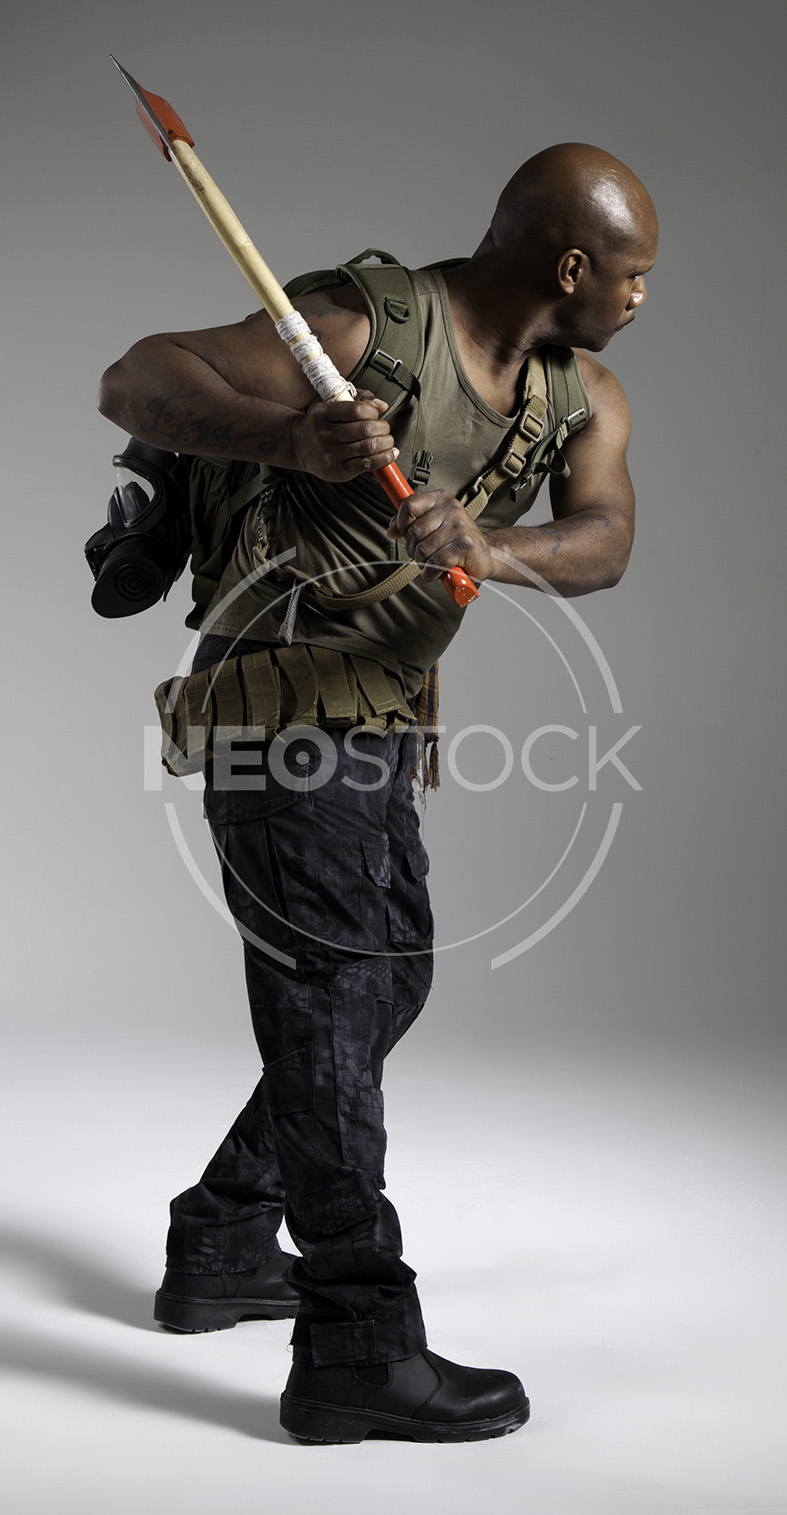 NeoStock - Regis Post Apoc II - Stock Photography